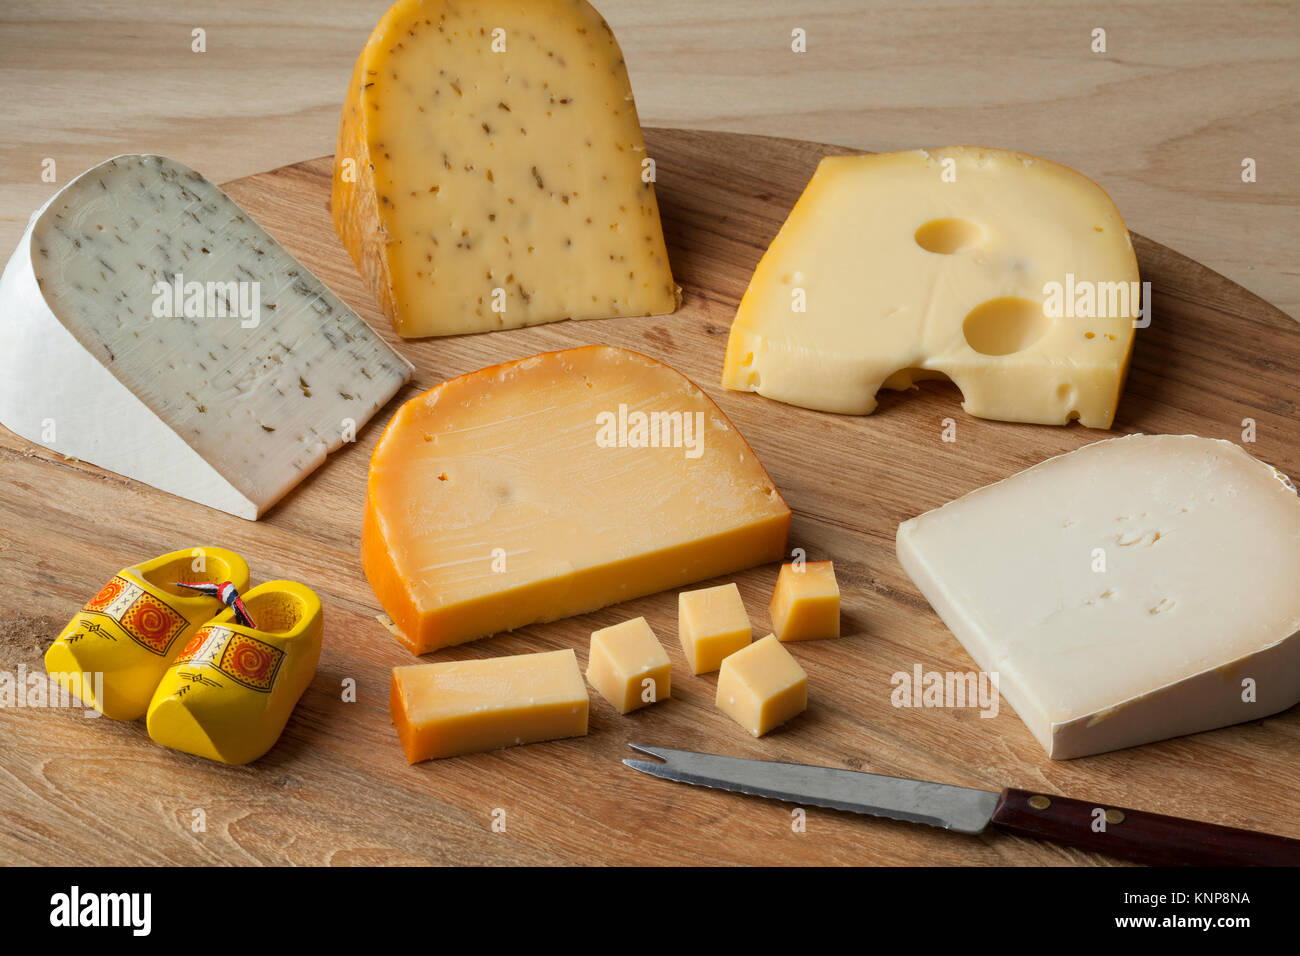 Diversity of Dutch cheese on a cutting board - Stock Image